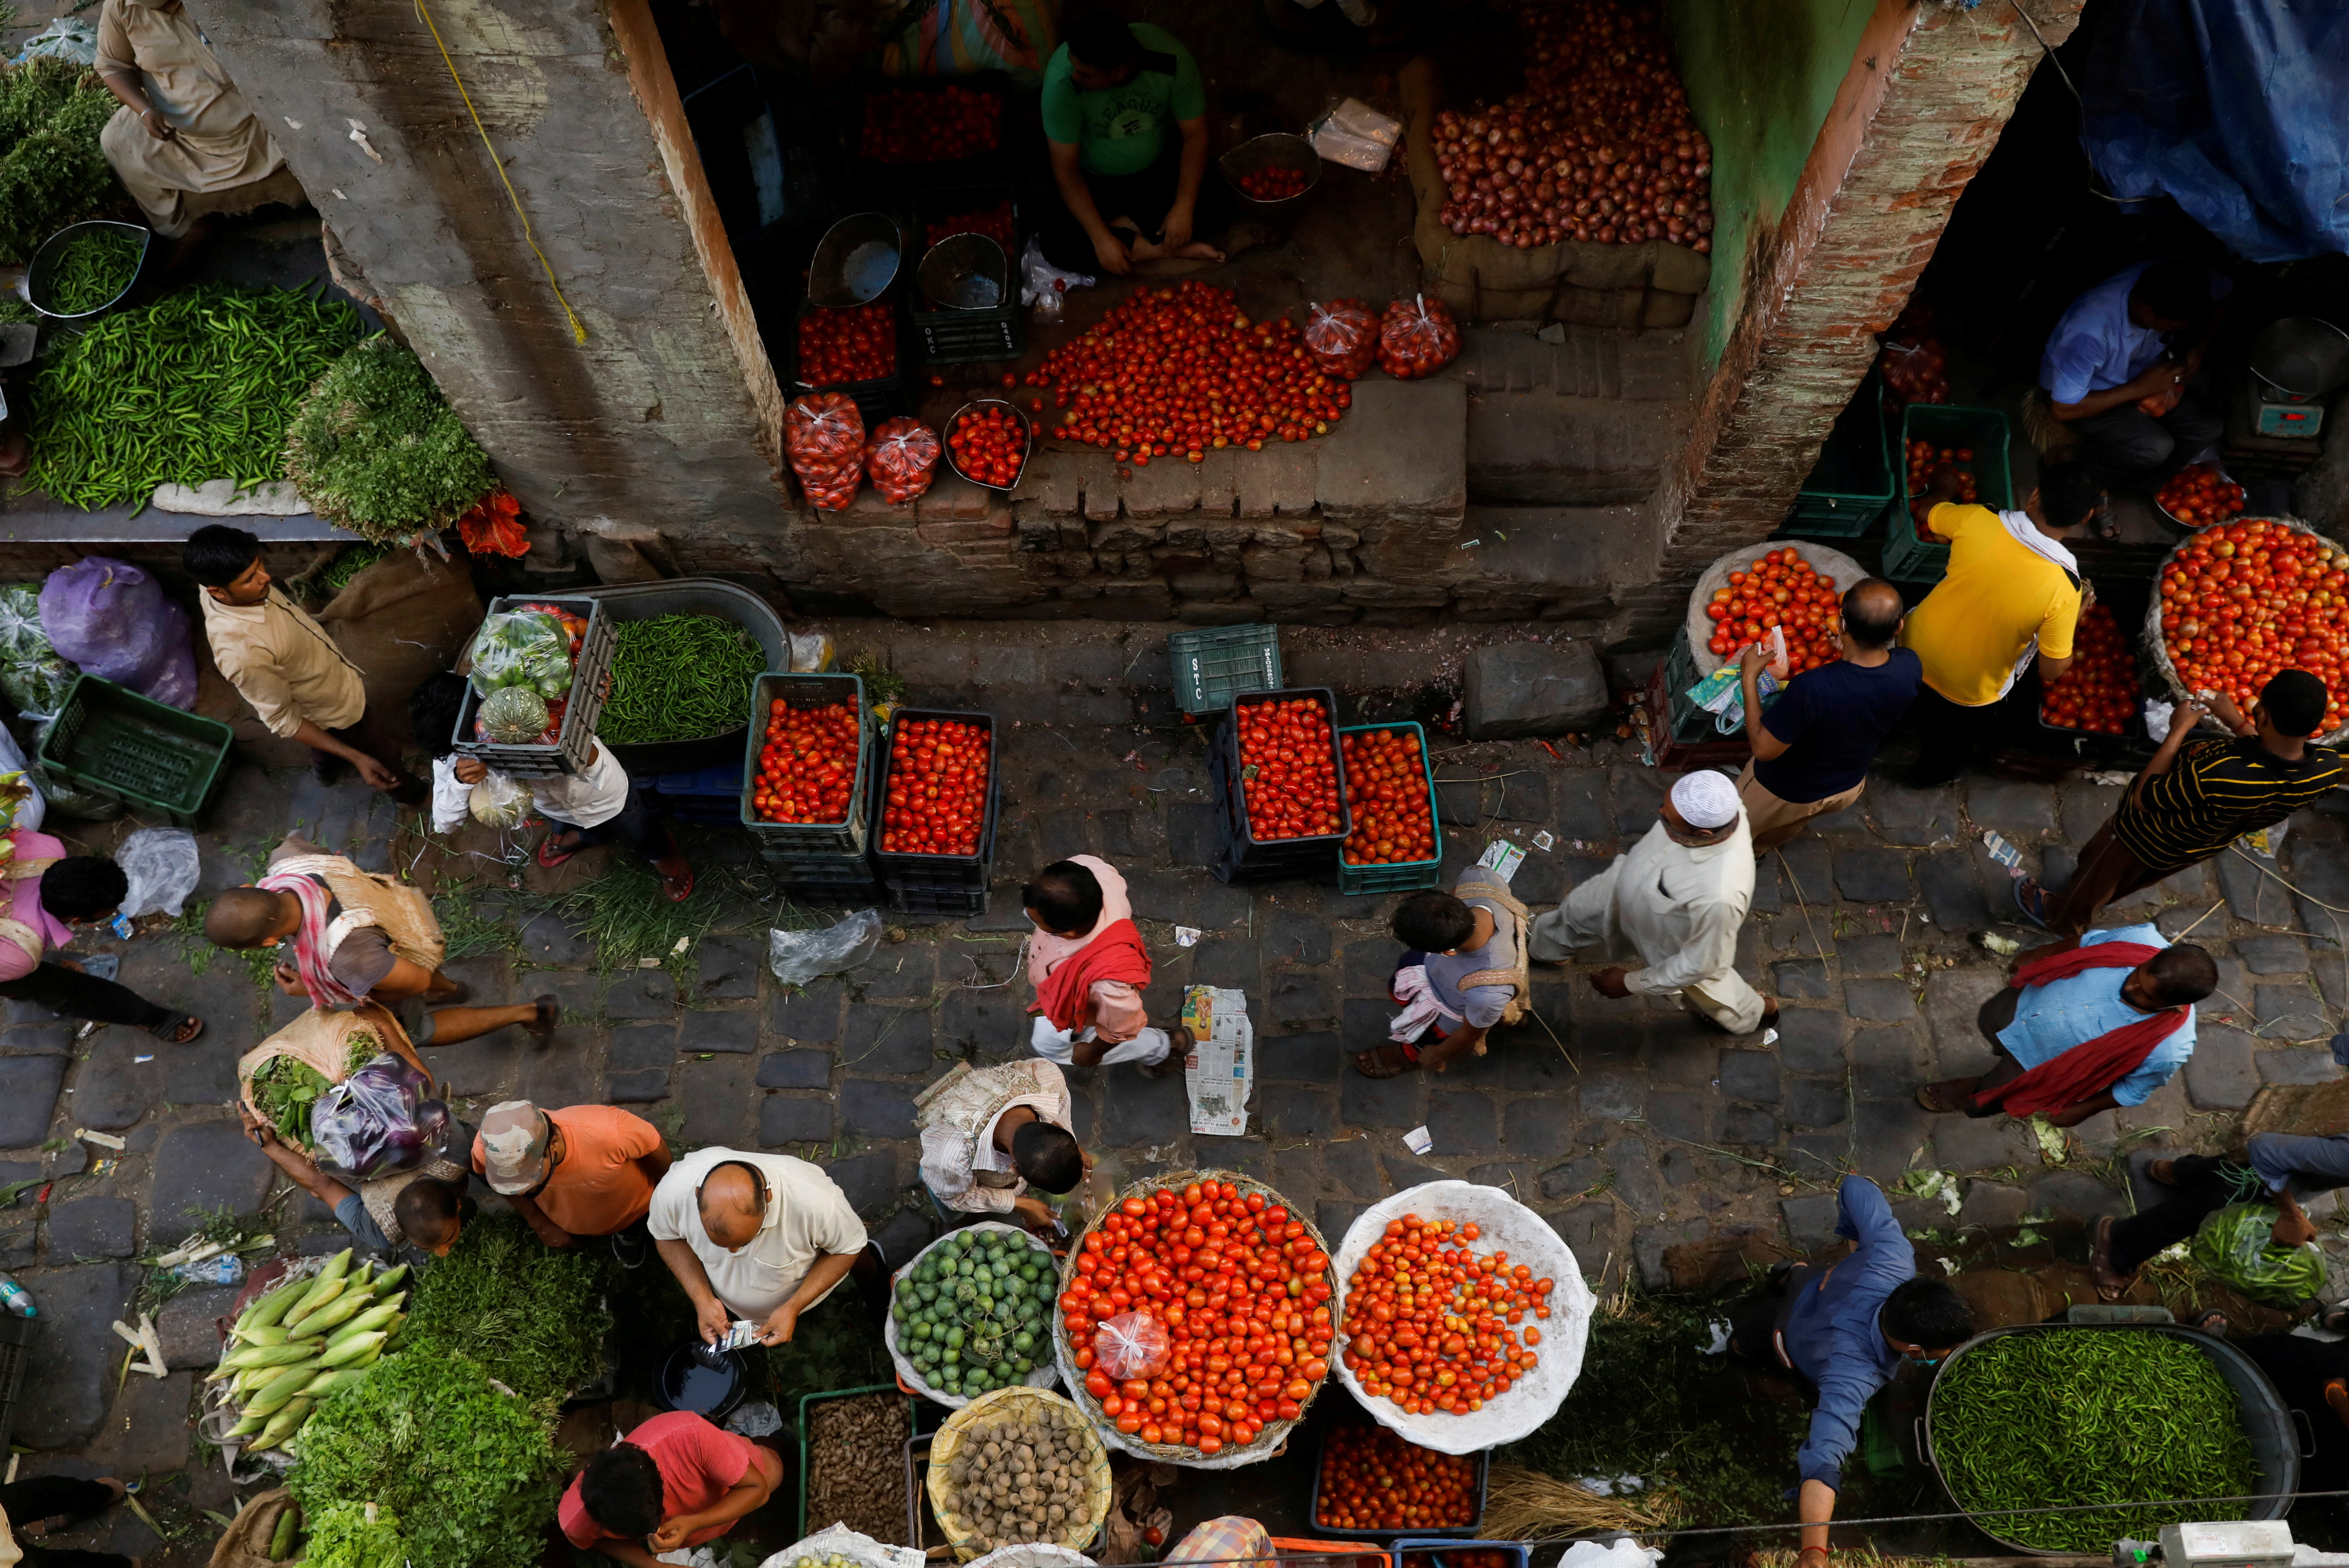 People shop at a crowded wholesale vegetable market after authorities eased coronavirus restrictions, following a drop in the coronavirus disease (COVID-19) cases, in the old quarters of Delhi, India, June 23, 2021. REUTERS/Adnan Abidi     TPX IMAGES OF THE DAY - RC206O9SUYMF